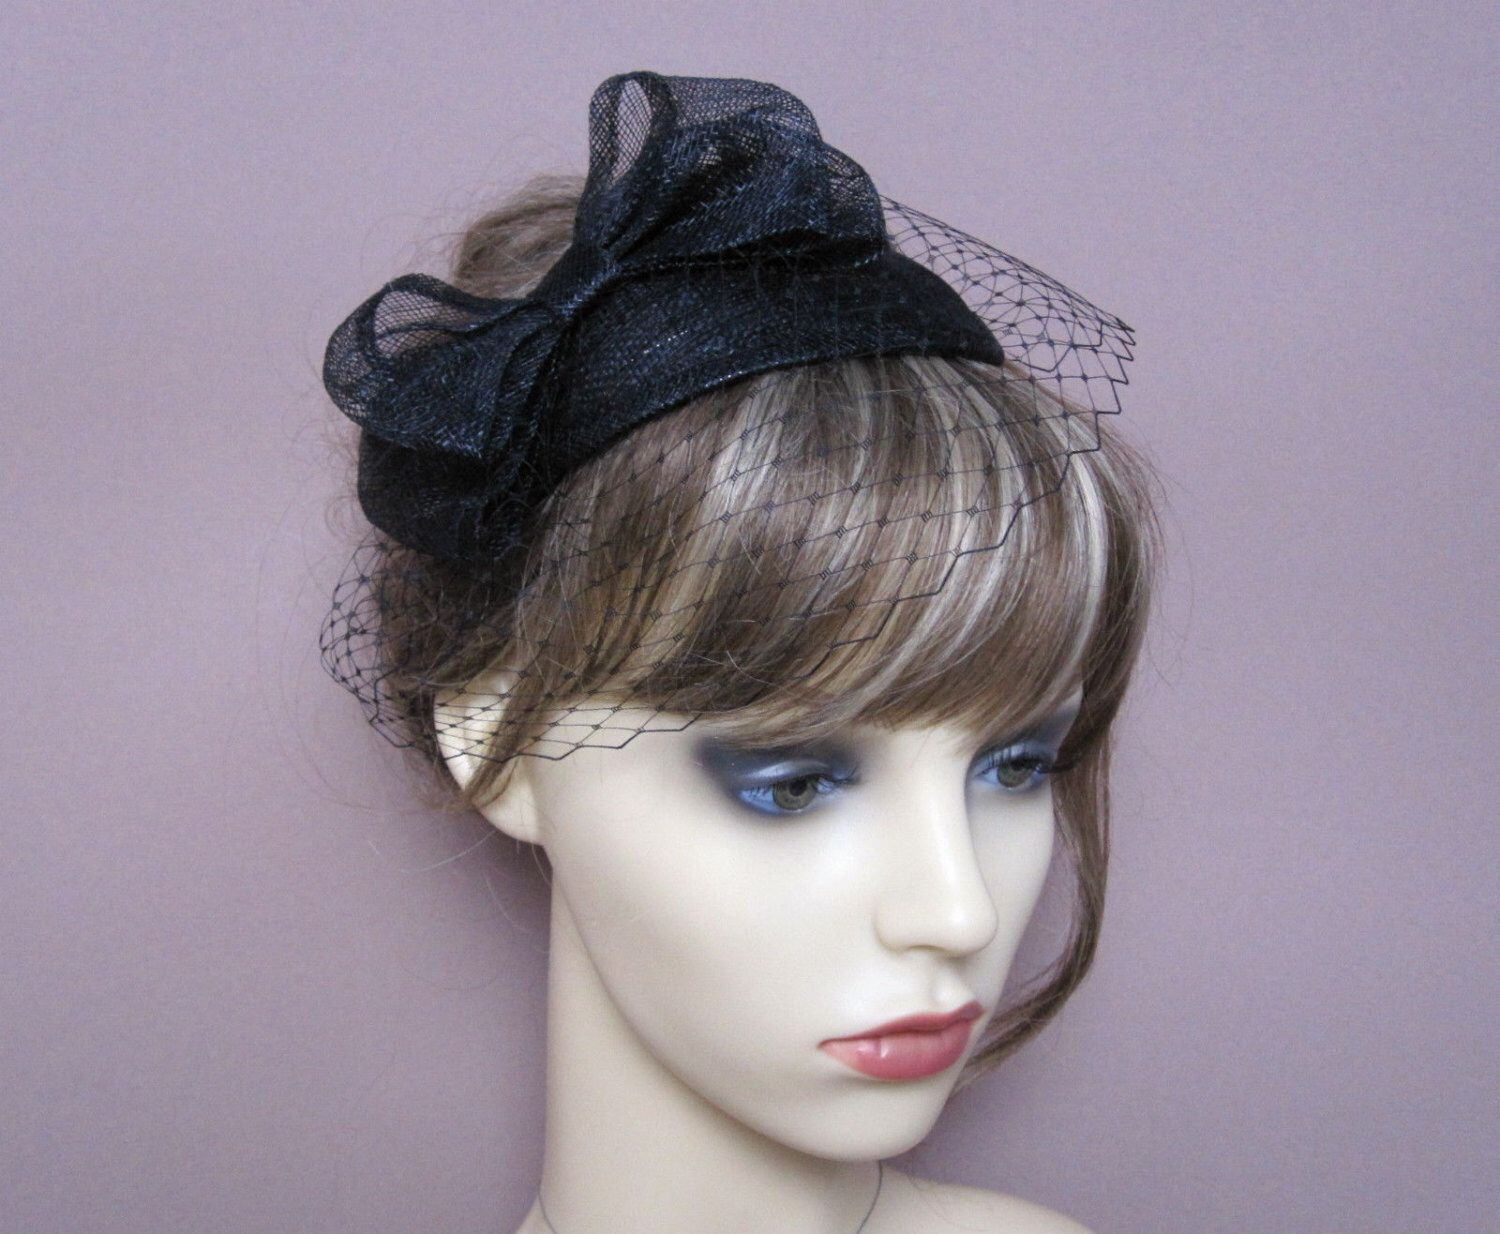 Black Fascinator Sinamay Teardrop Veiled Hat With Bow French Net Veil 1940s 1950s Style Headpiece